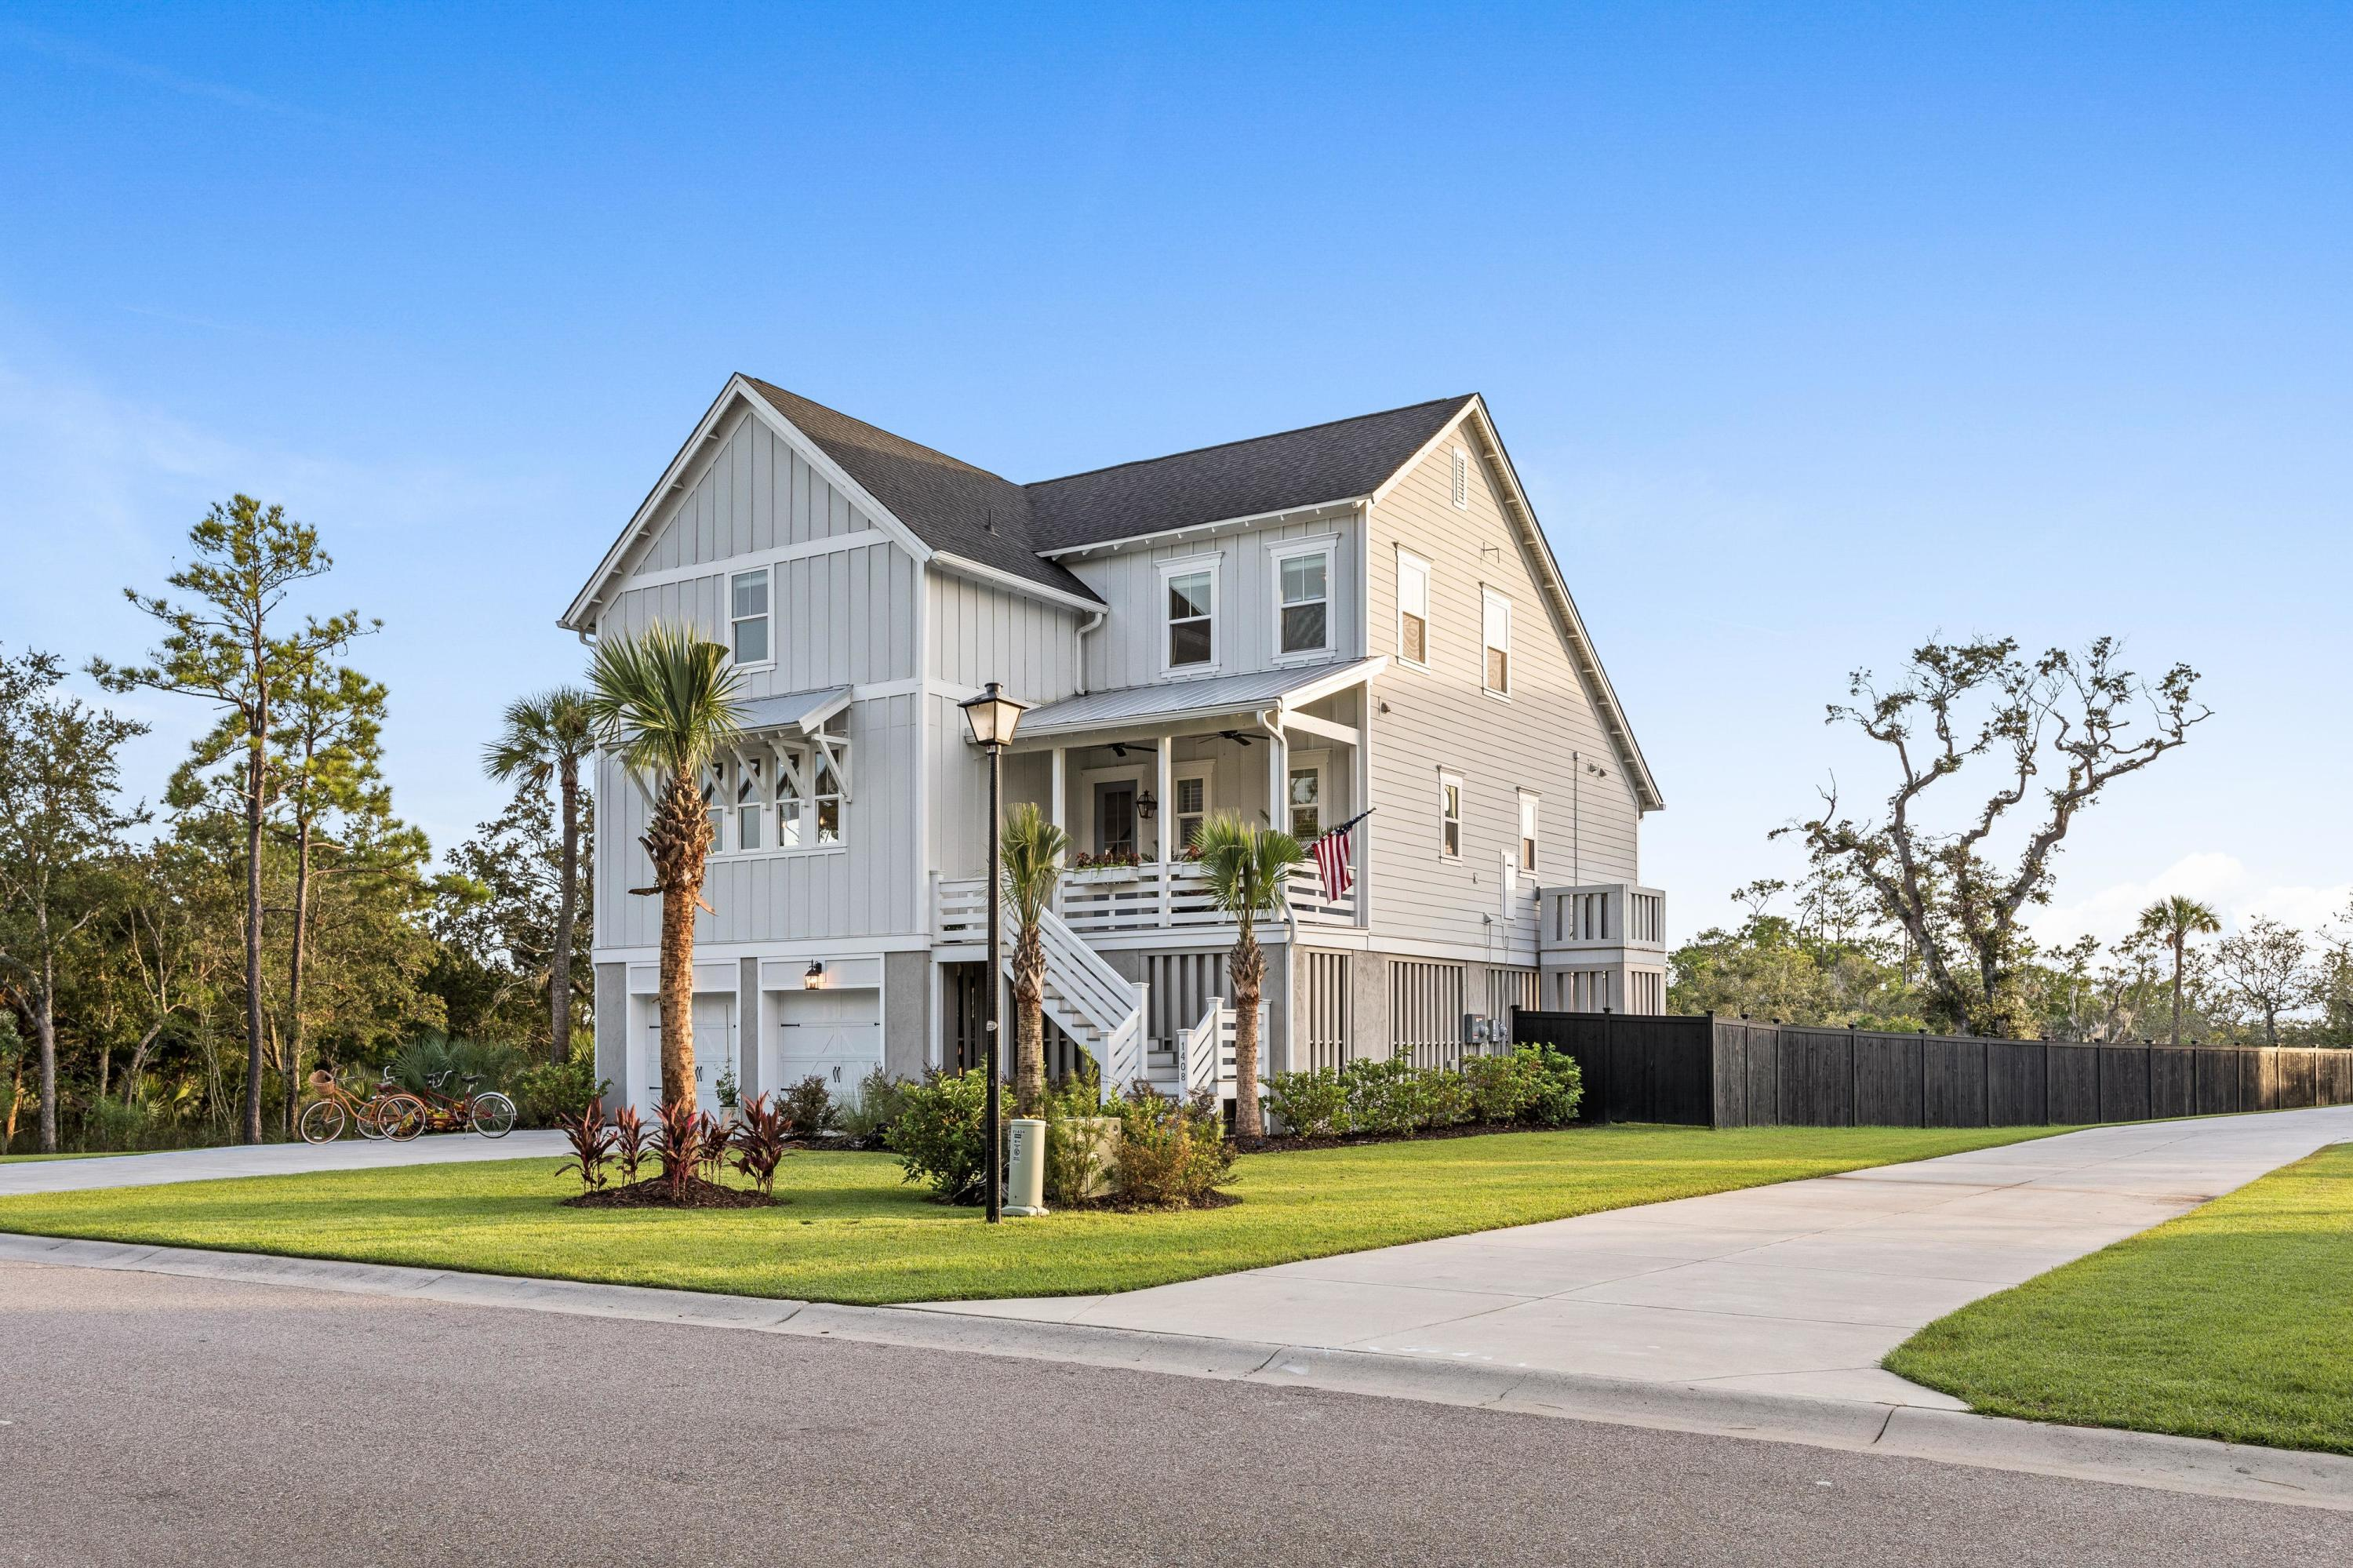 Stratton by the Sound Homes For Sale - 1408 Stratton, Mount Pleasant, SC - 2